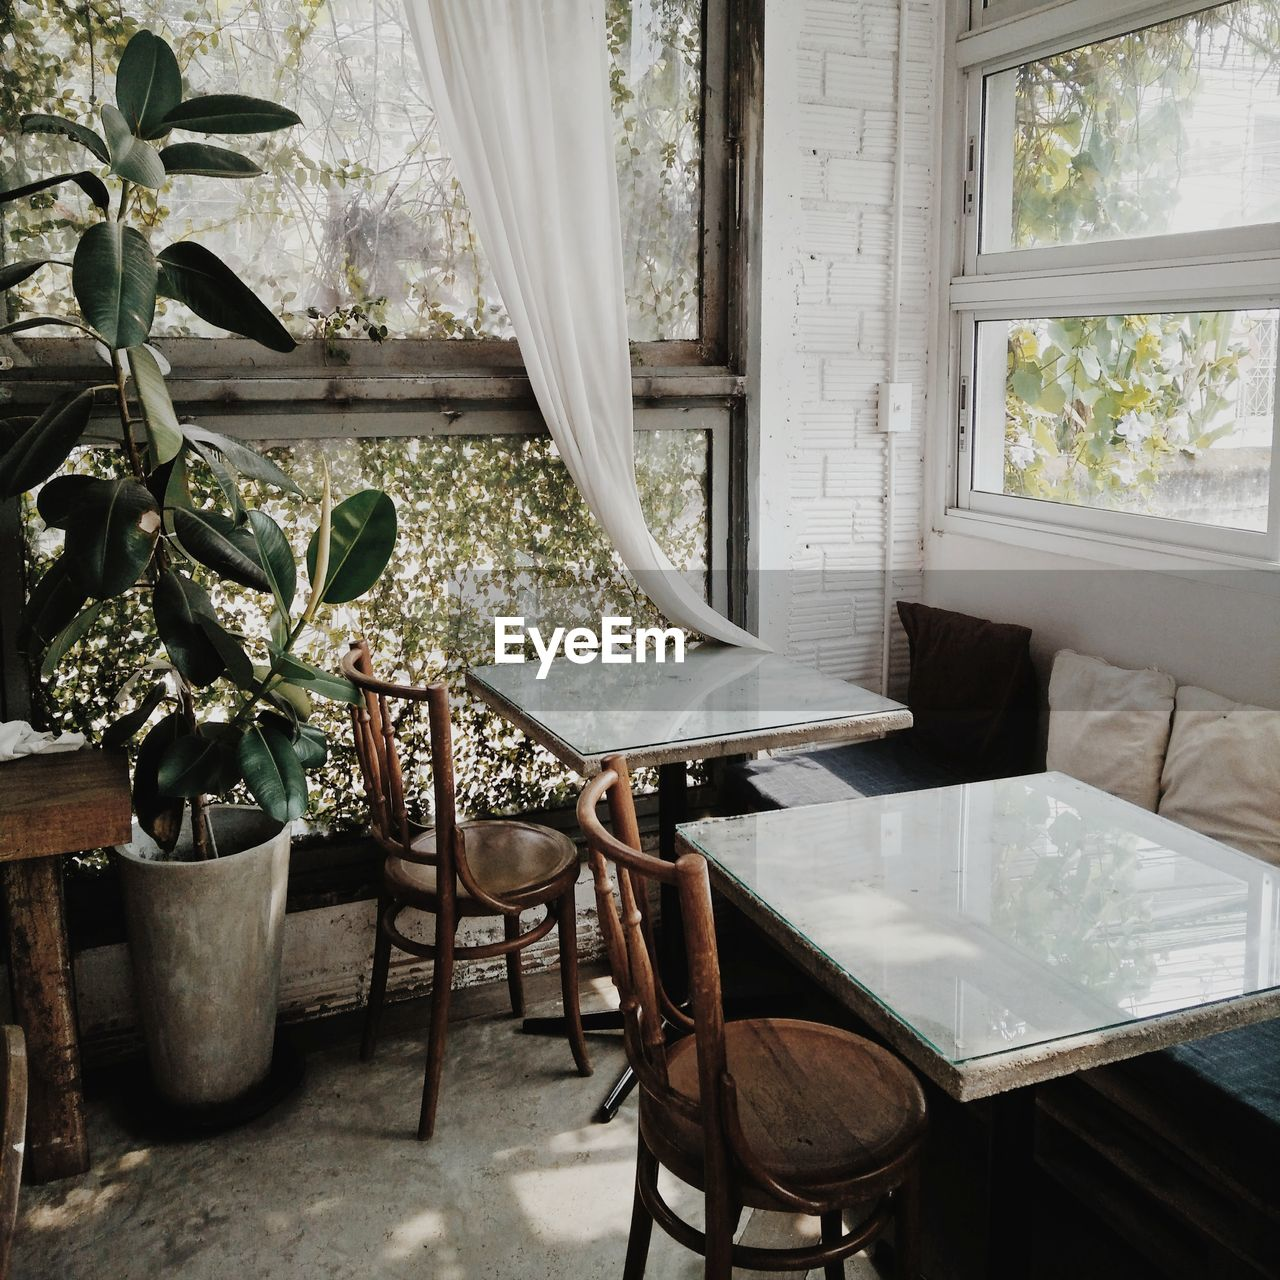 seat, chair, window, table, plant, no people, indoors, absence, home interior, nature, potted plant, day, growth, architecture, empty, furniture, house, curtain, transparent, houseplant, flower pot